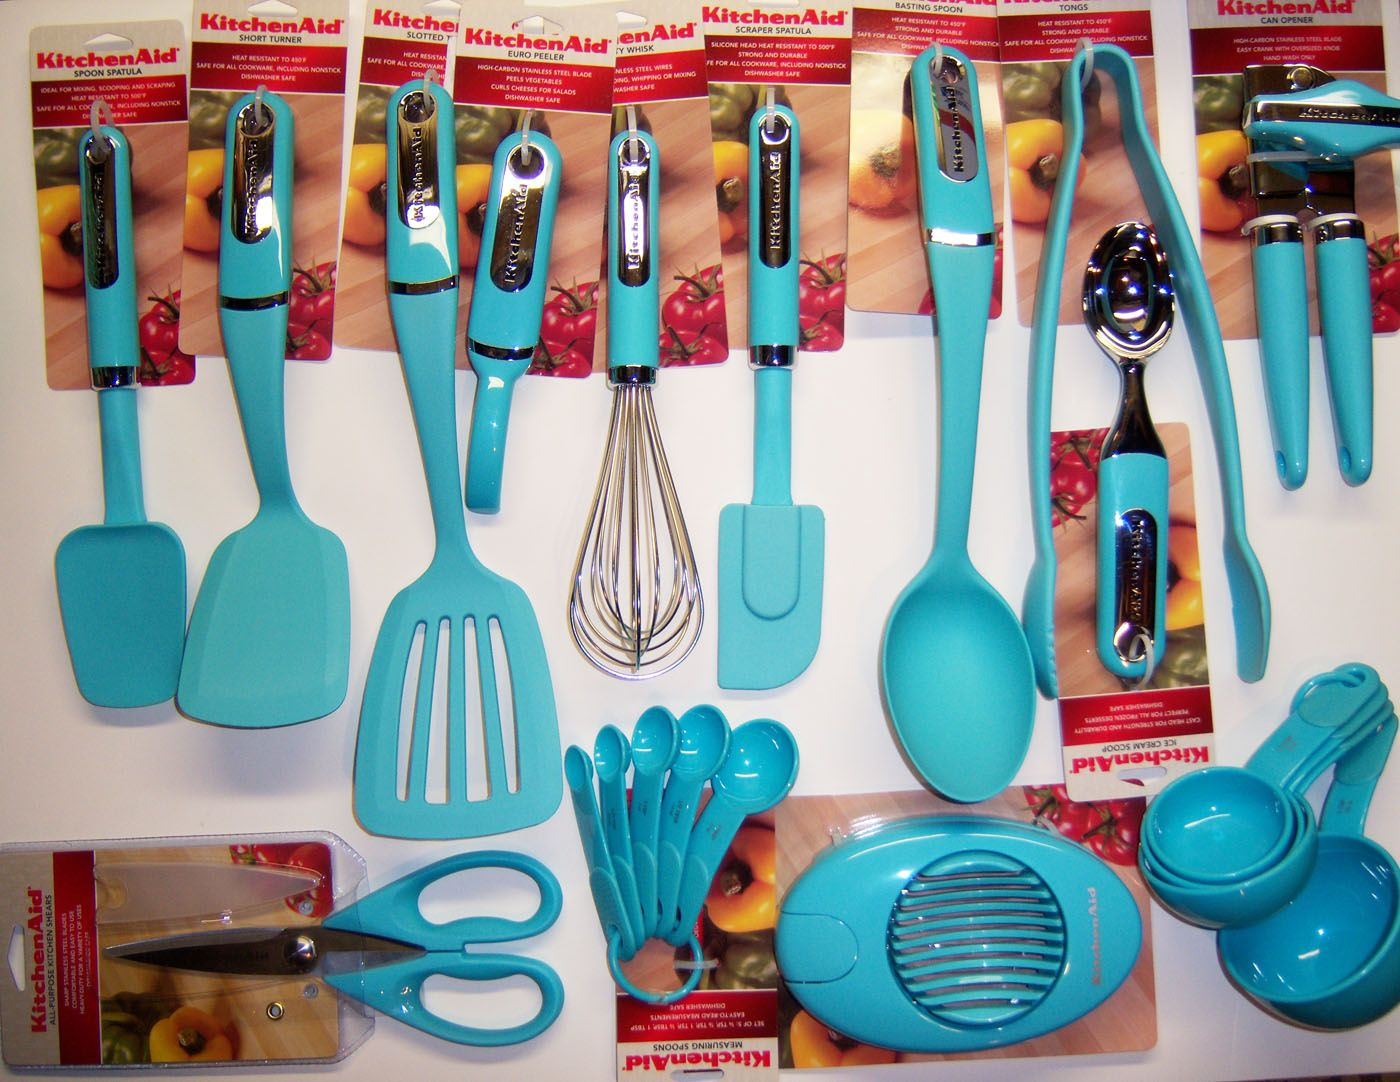 Kitchenaid Turquoise Blue Choice Of Different Kitchen Cooking